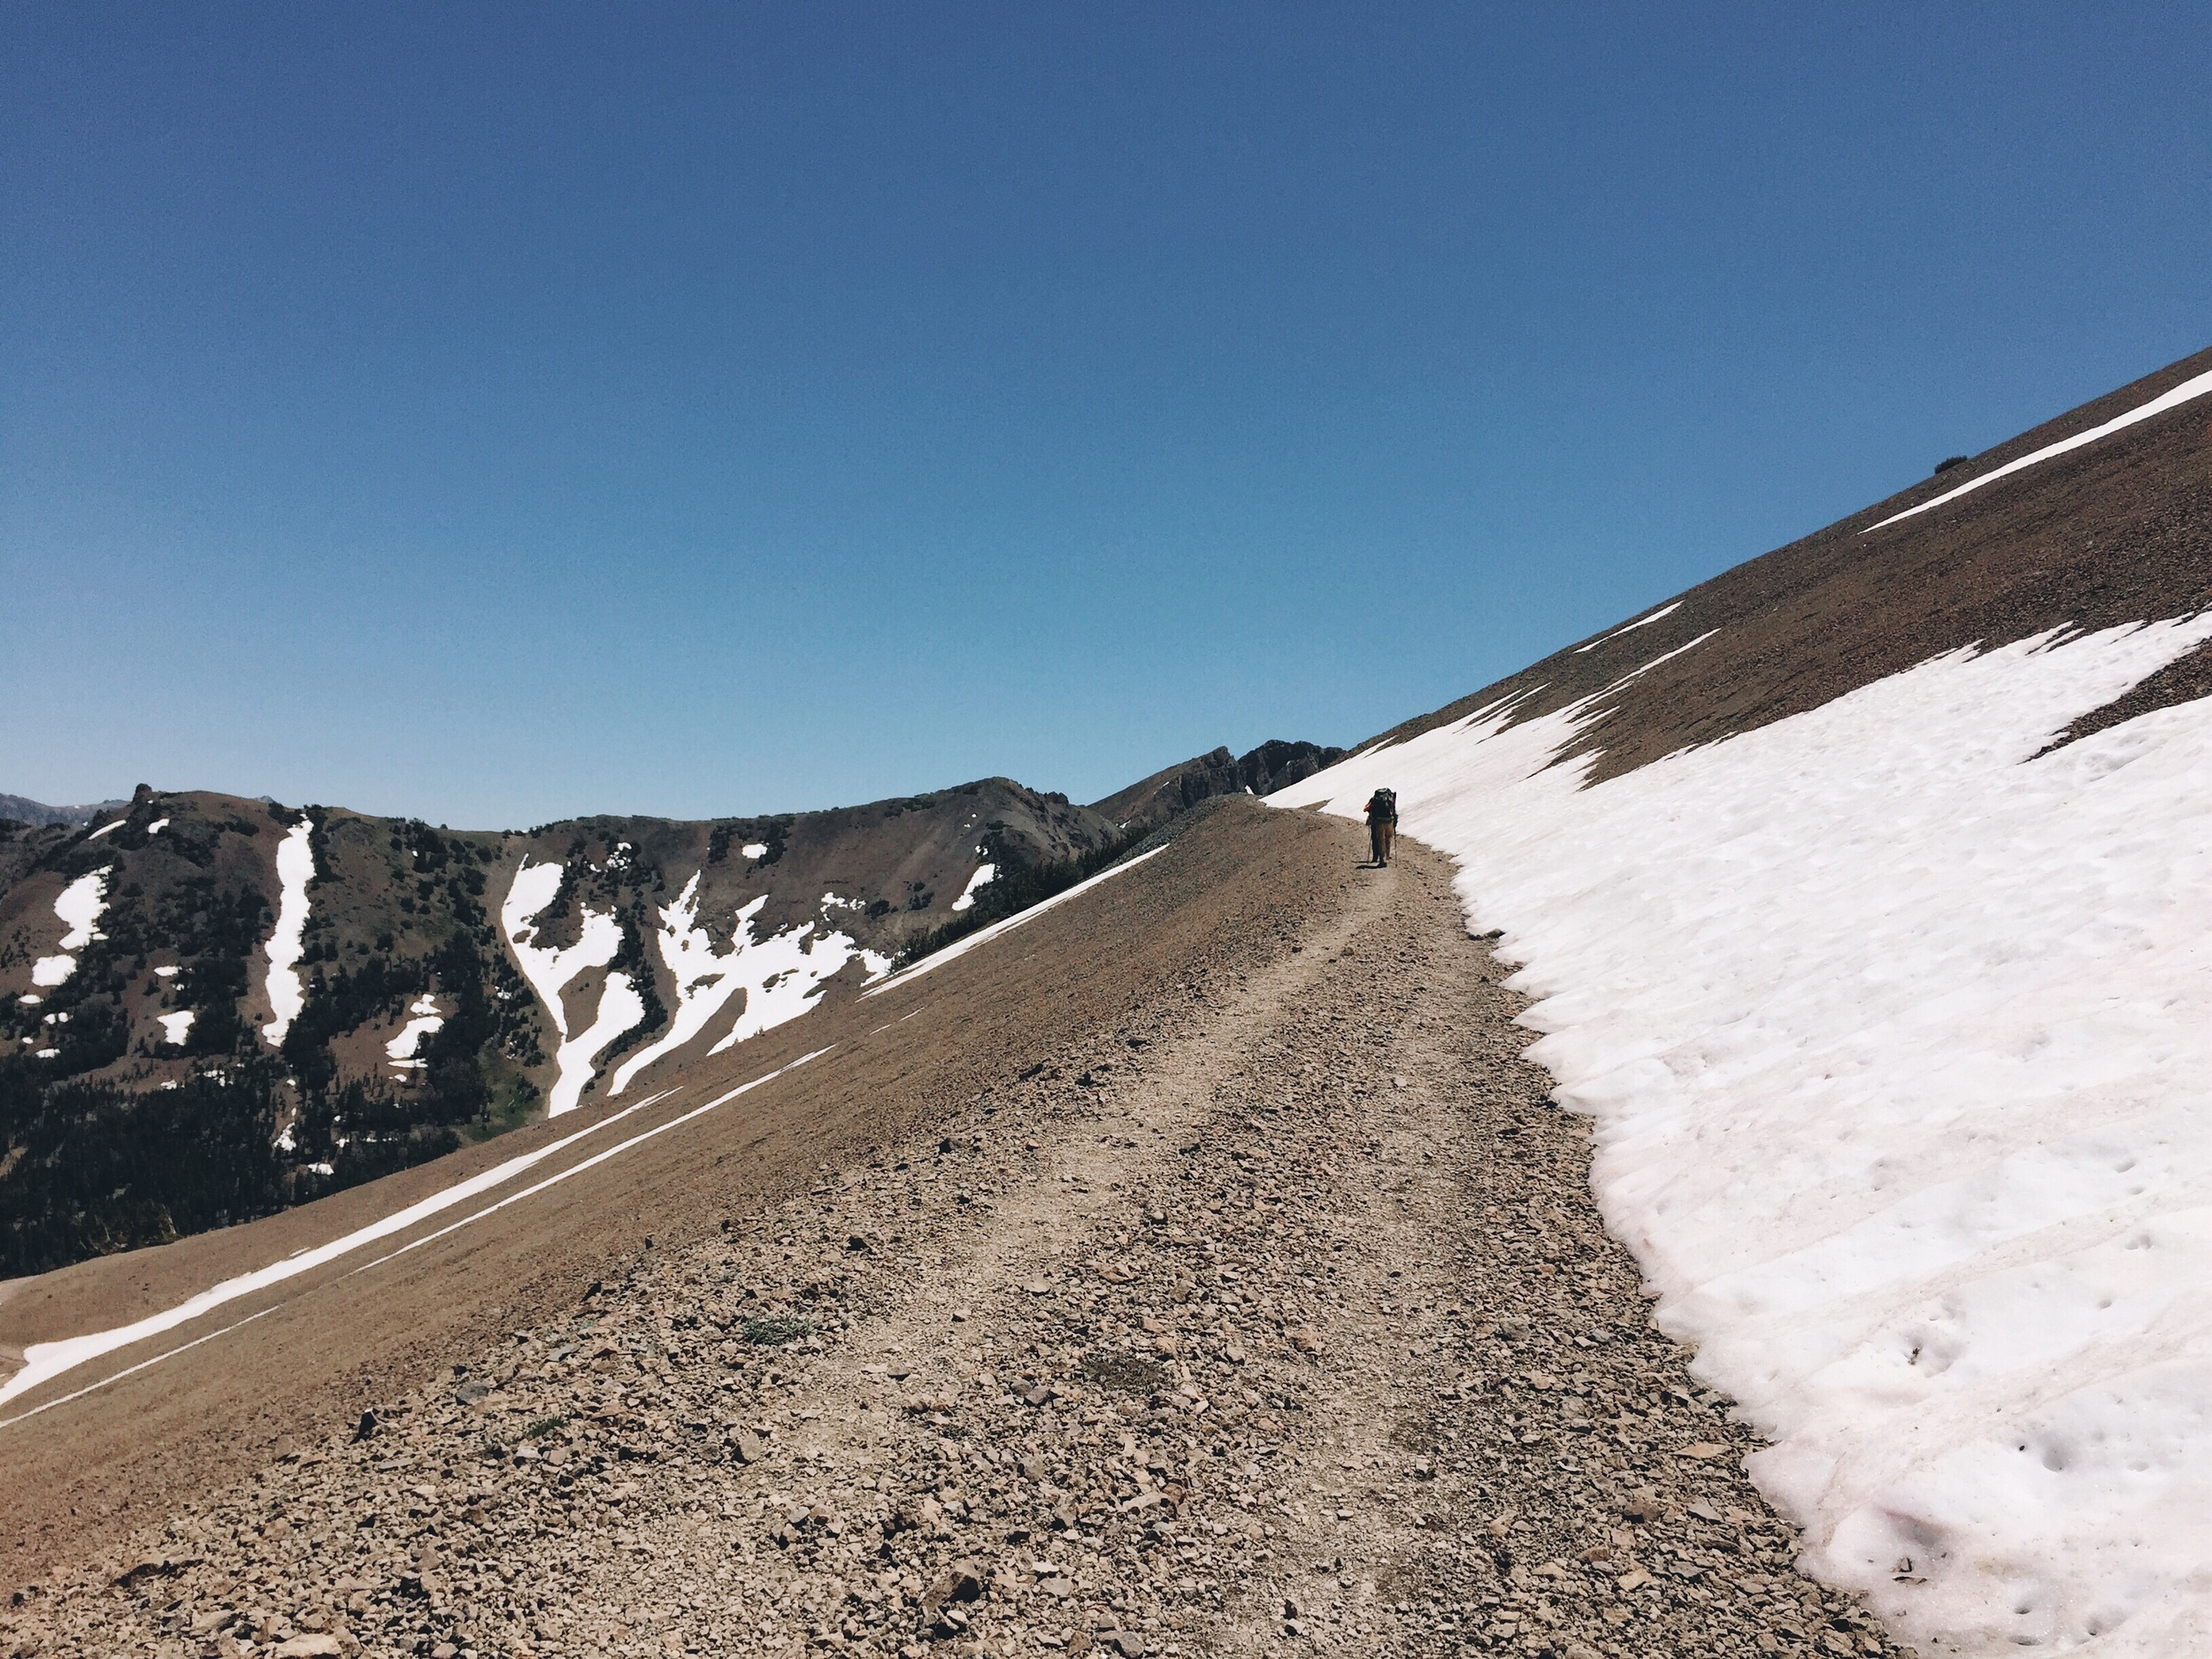 Going up Sonora pass.